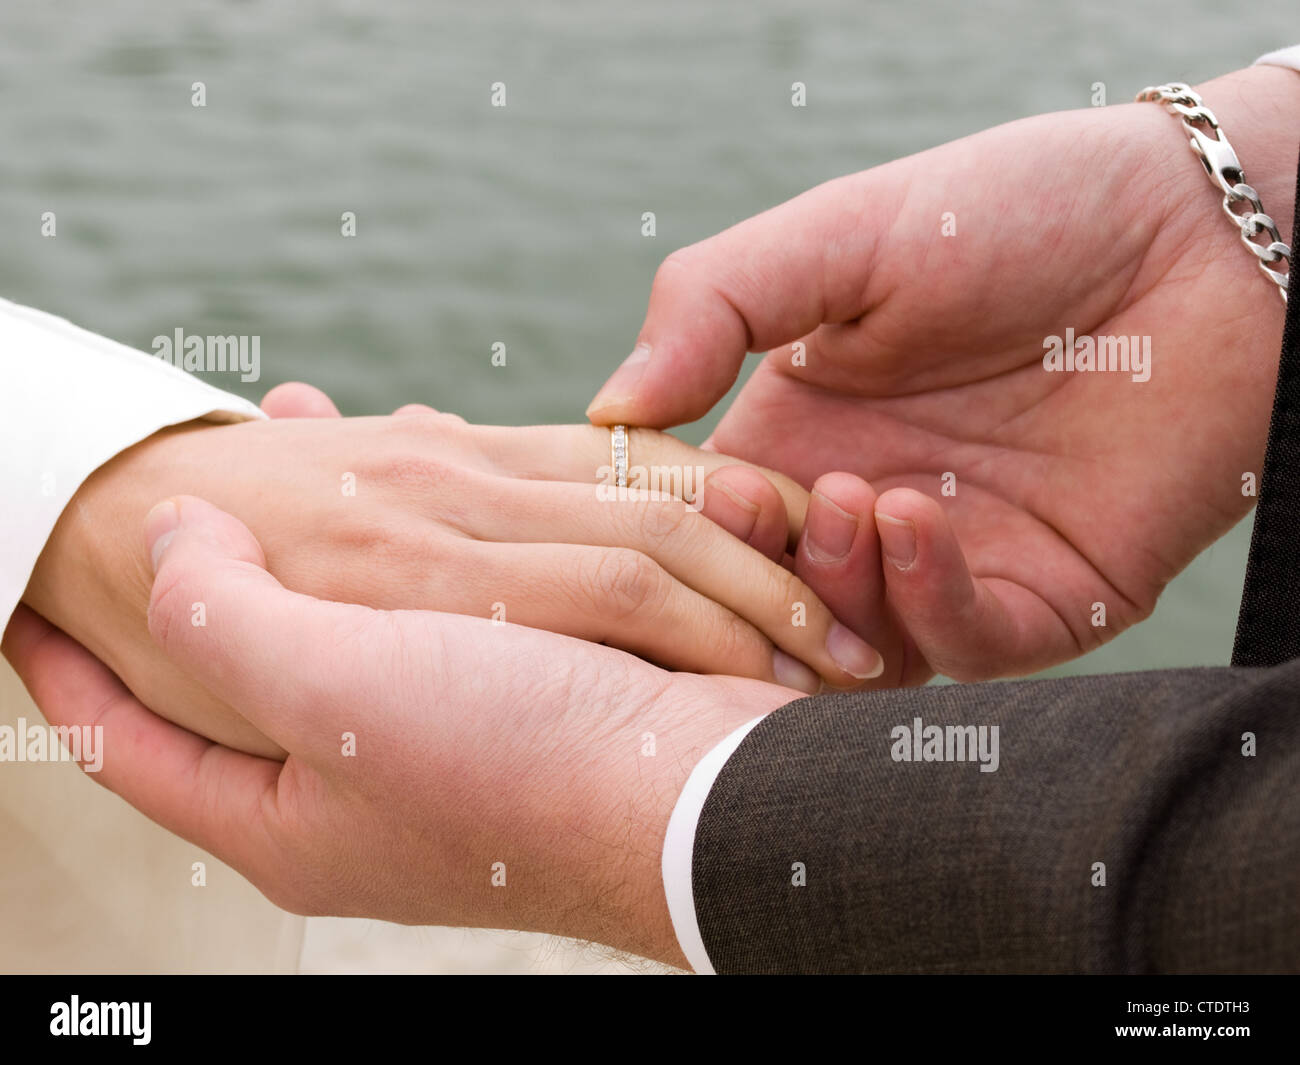 Closeup on exchange wedding rings of a young couple Stock Photo